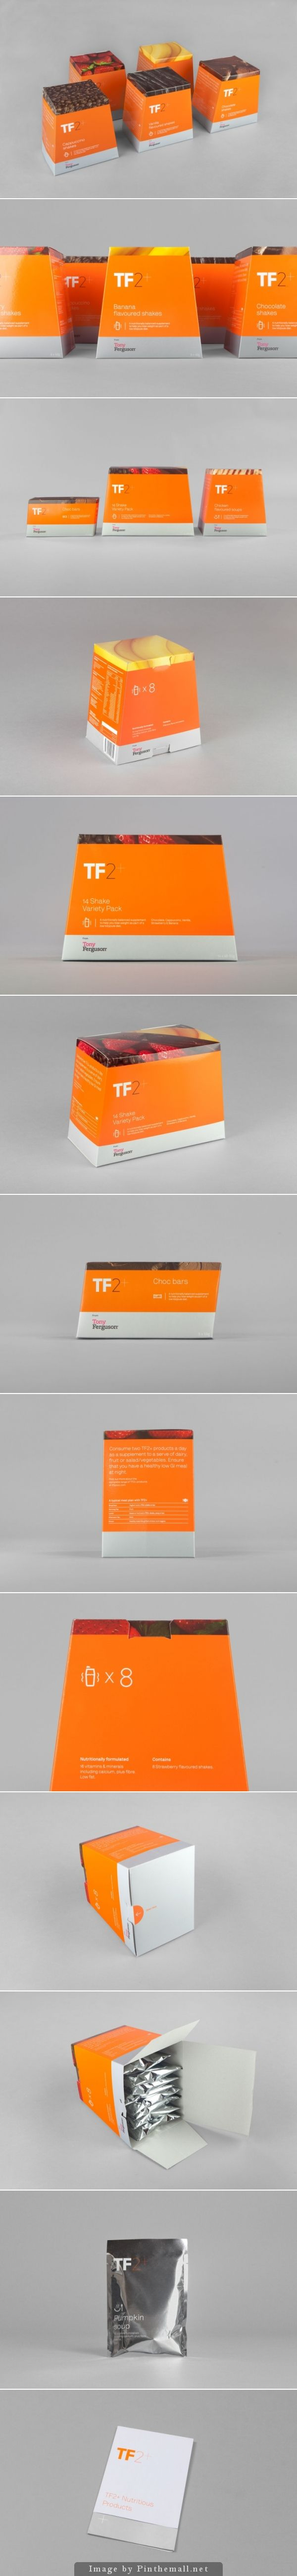 TF2 by Maud for the 'do it your­self' weight loss category #packaging curated by Packaging Diva PD created via http://retaildesignblog.net/2013/11/12/tf2-branding-by-maud/